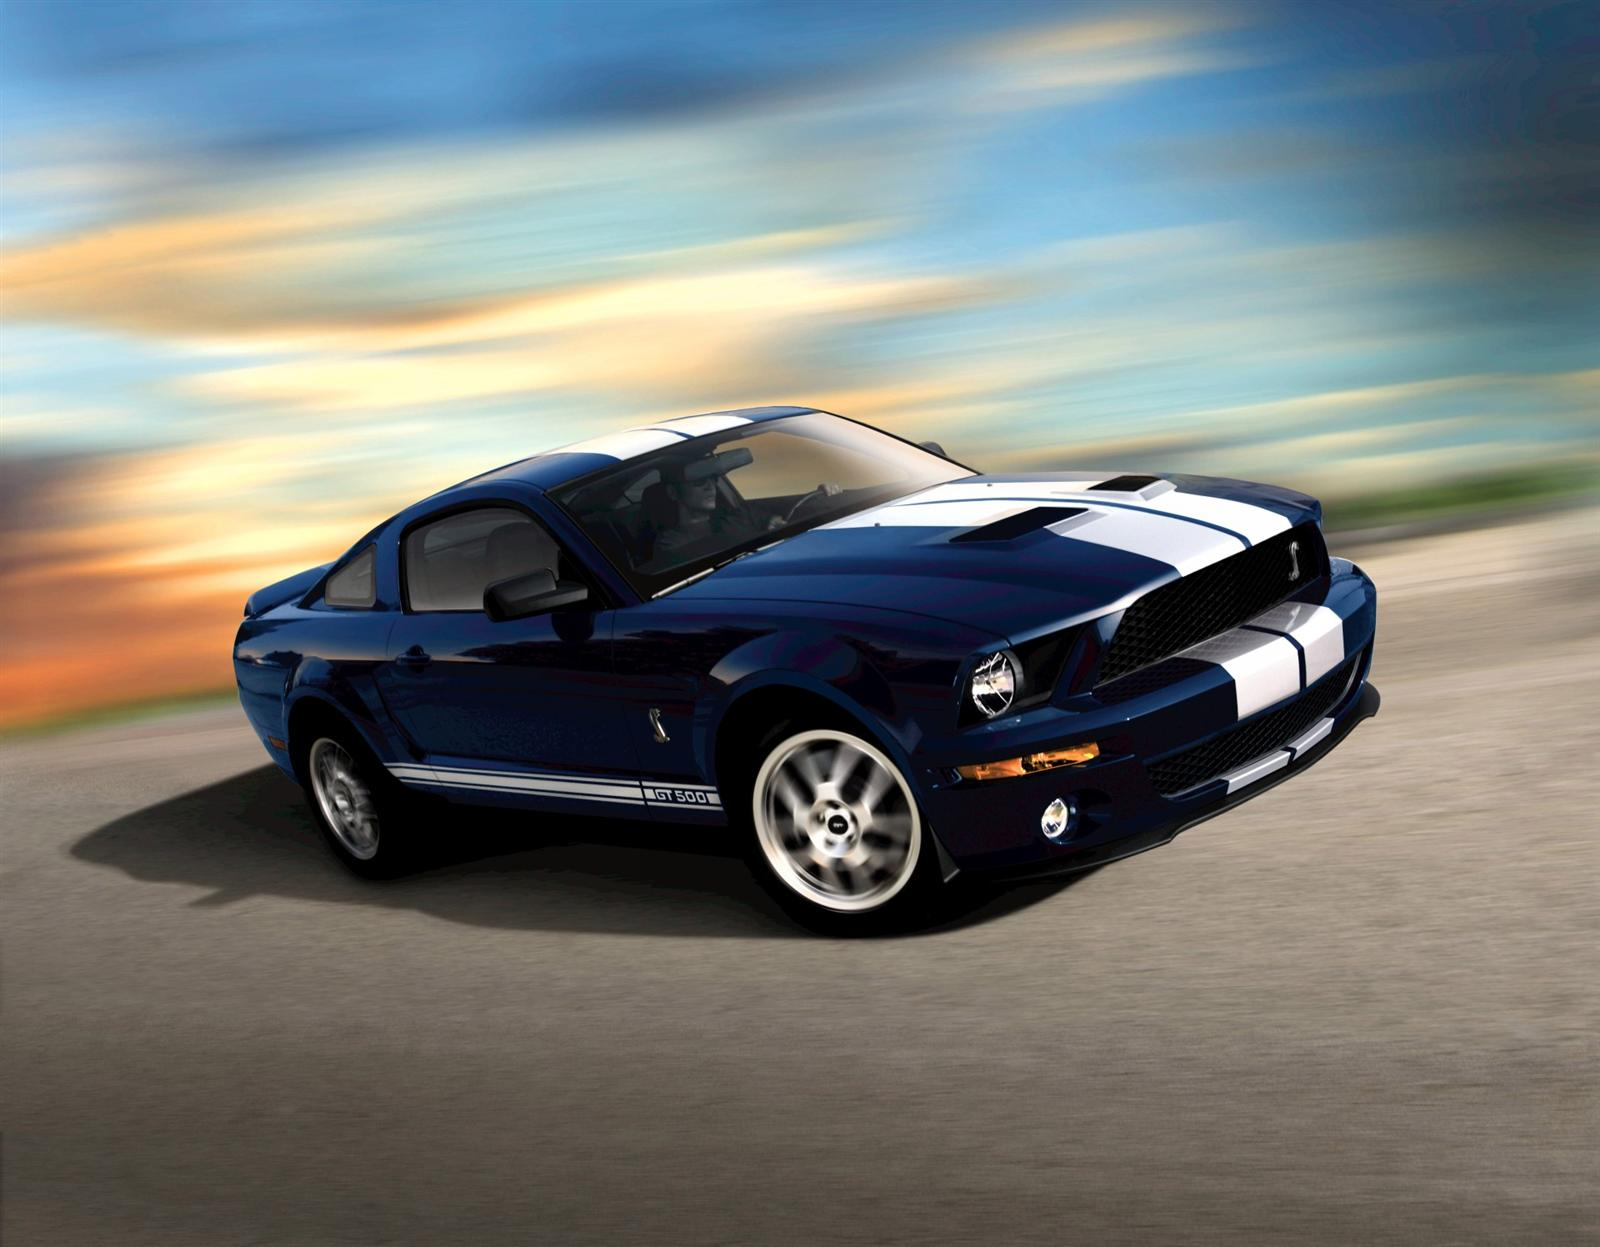 2009 Ford Shelby Gt 500 Image Photo 9 Of